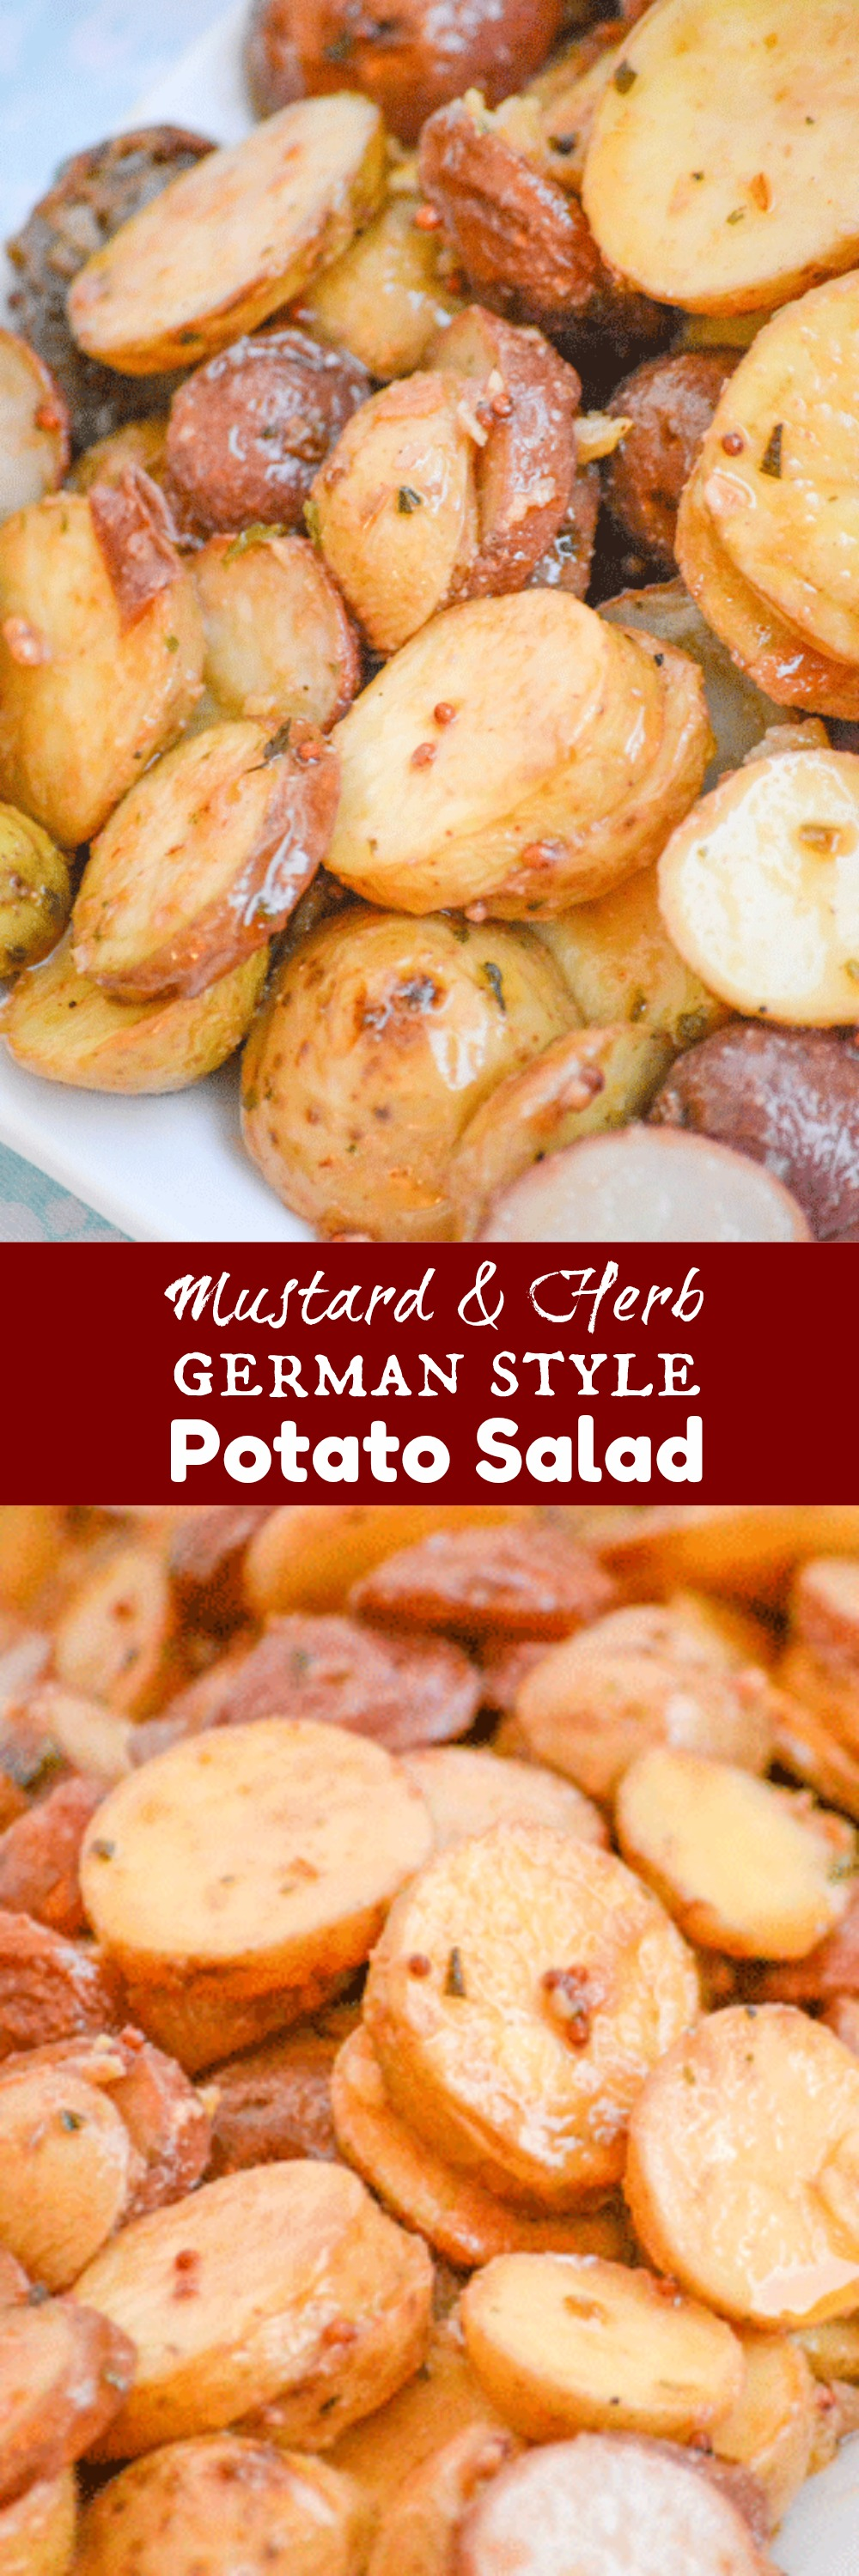 Potato salad is a Southern staple, but just like your wardrobe- it's a dish that needs to up updated for the season. This Warm Mustard & Herb German Style Potato Salad is a cold weather 'must-have', seasonal side dish.